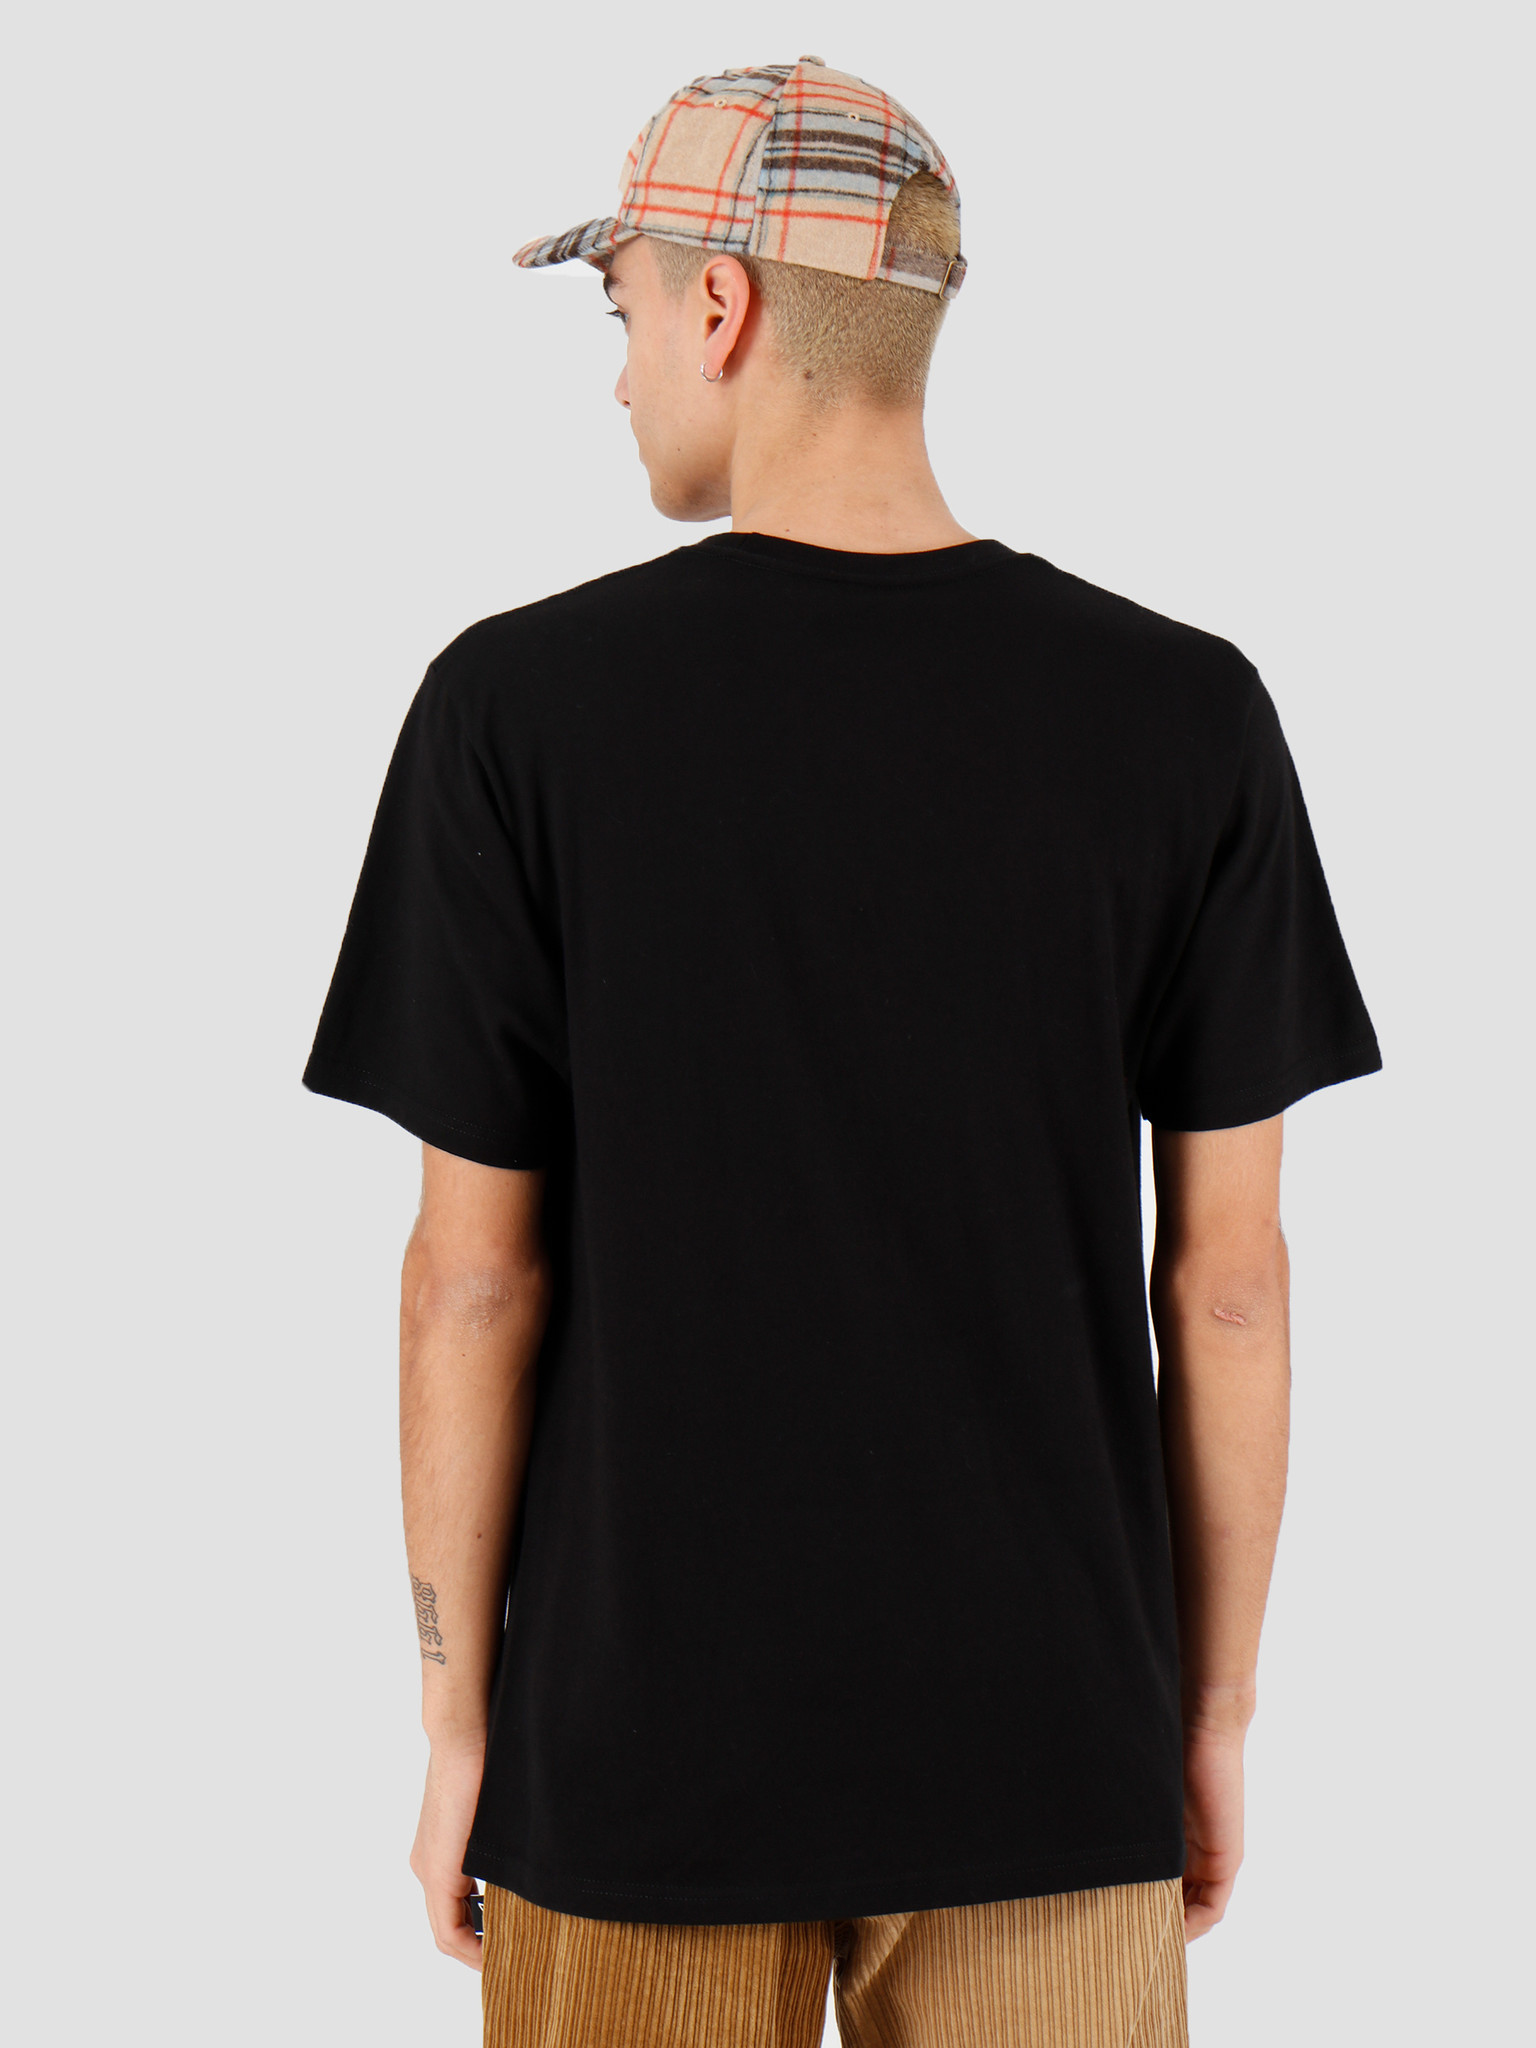 Stussy Stussy City Stack Tee Black 1904467